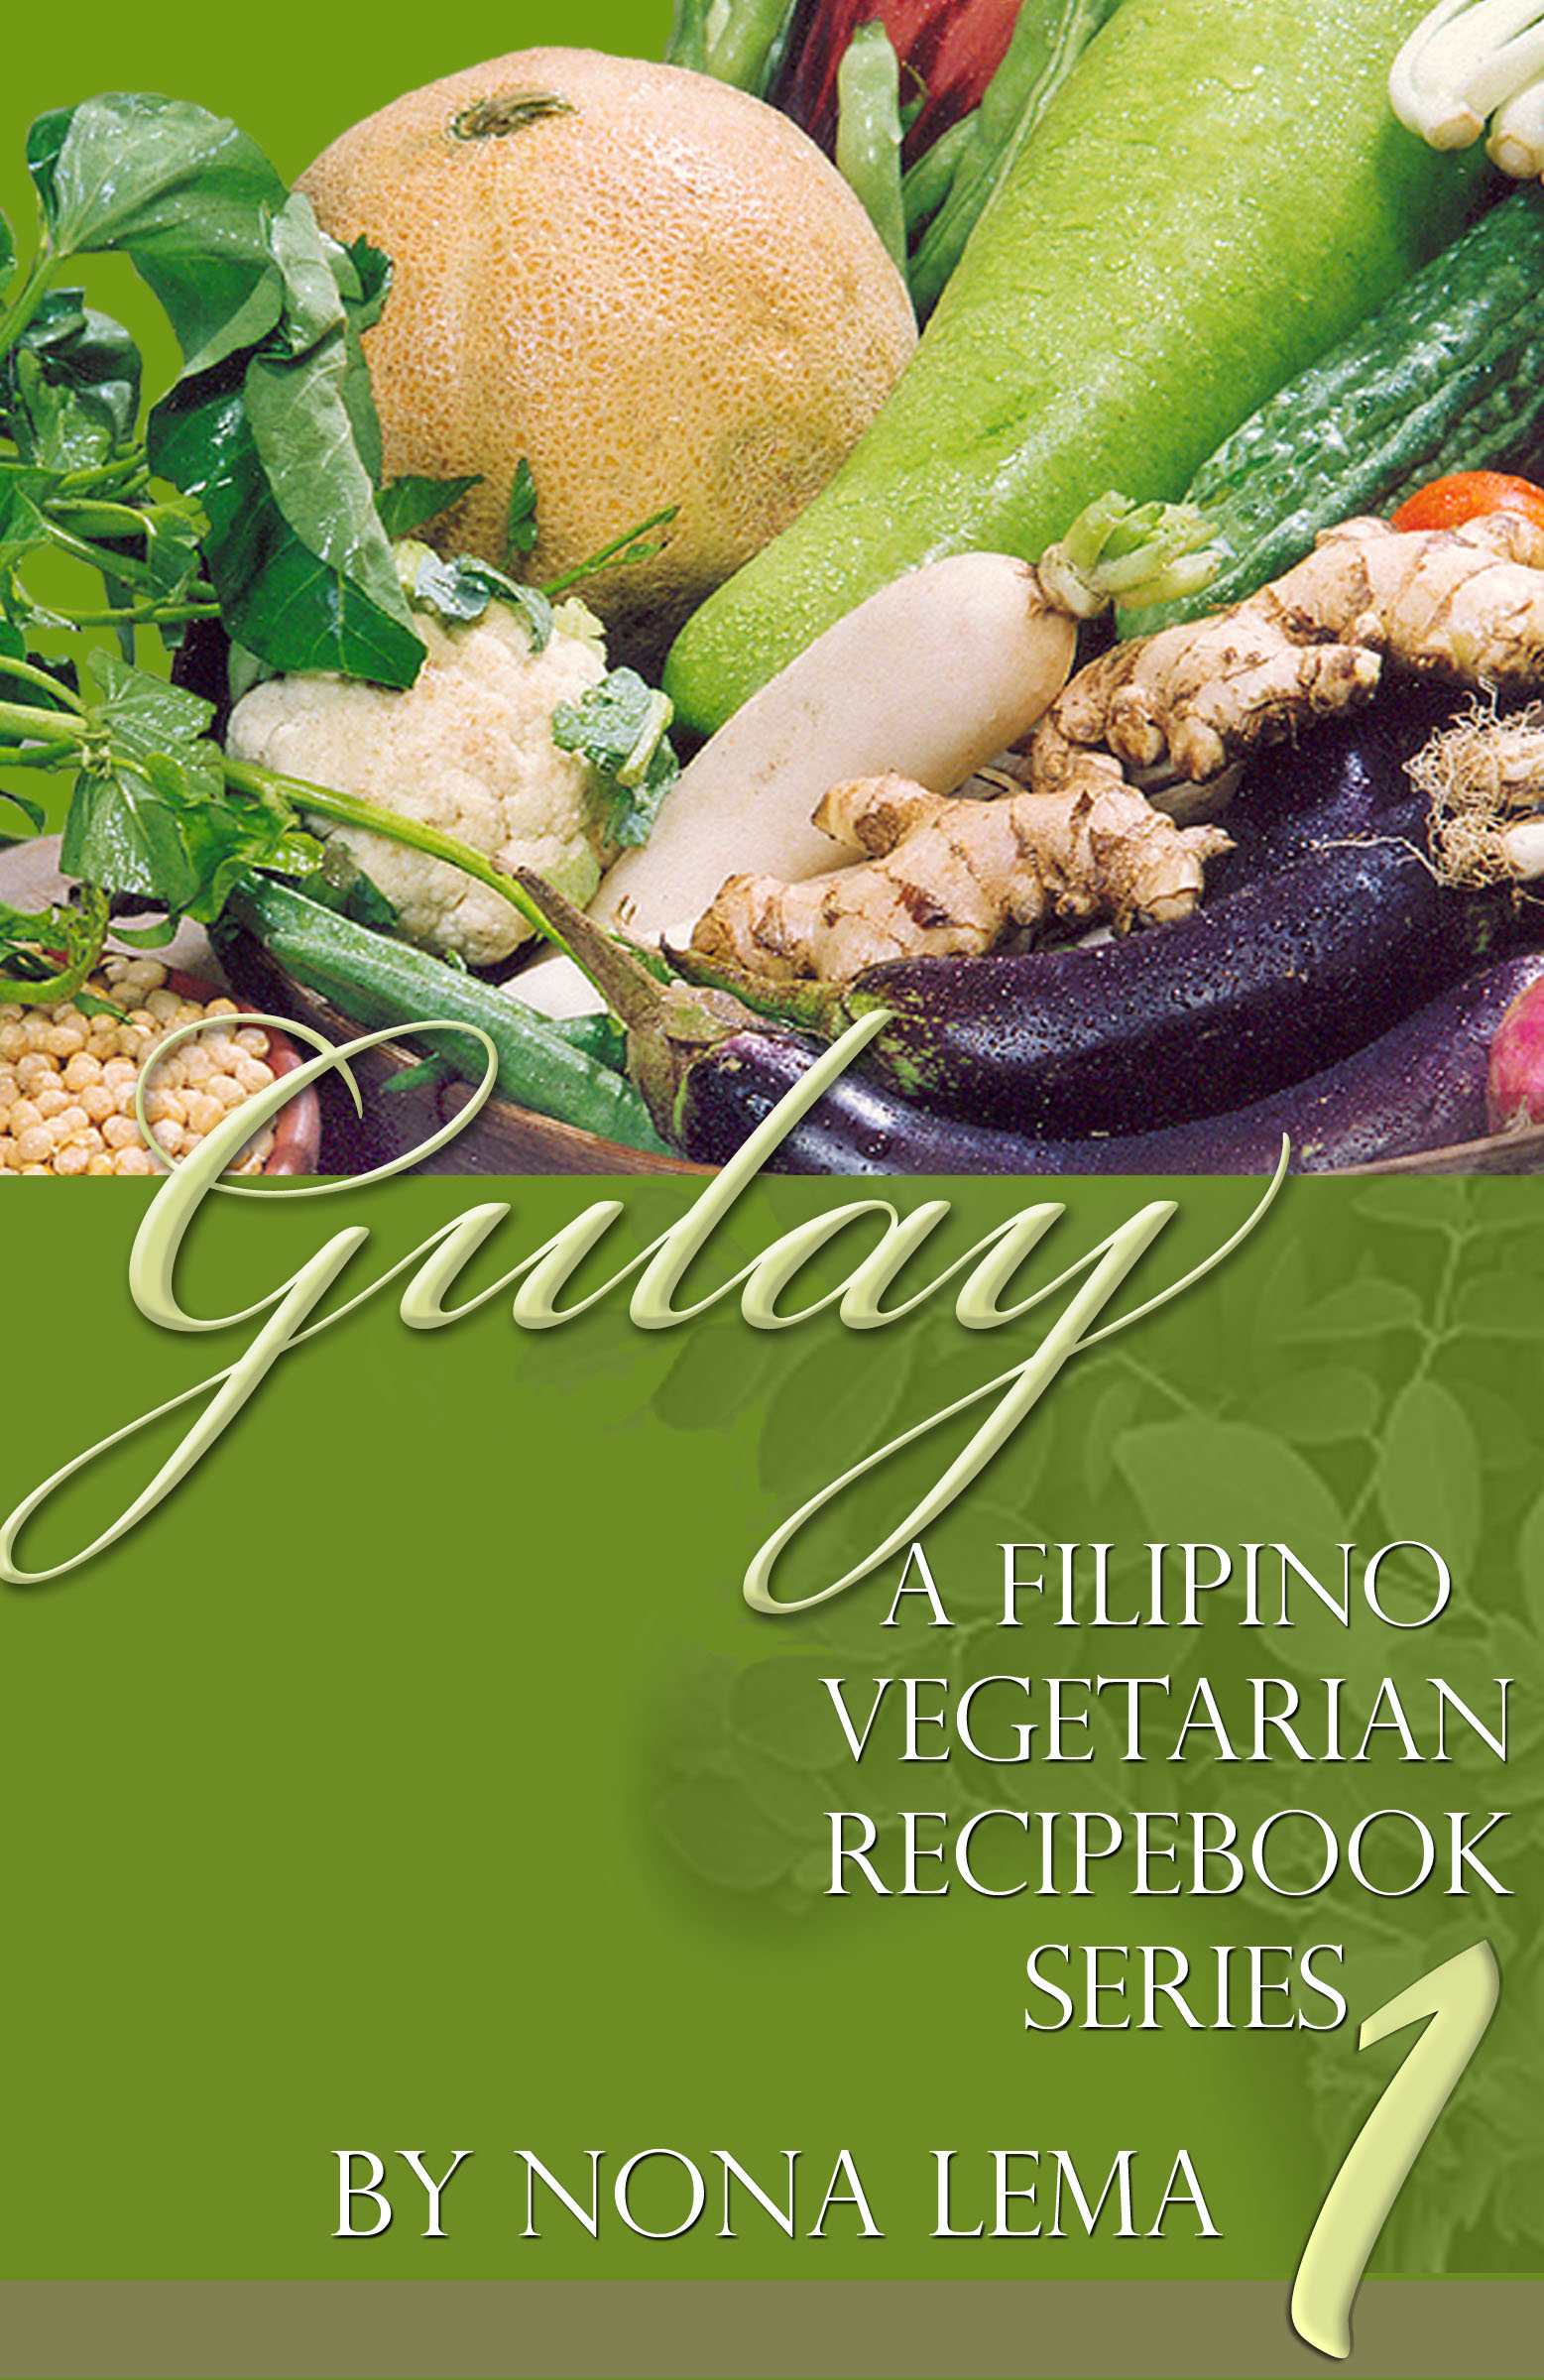 Smashwords gulay book 1 a filipino vegetarian recipebook series gulay book 1 a filipino vegetarian recipebook series forumfinder Image collections